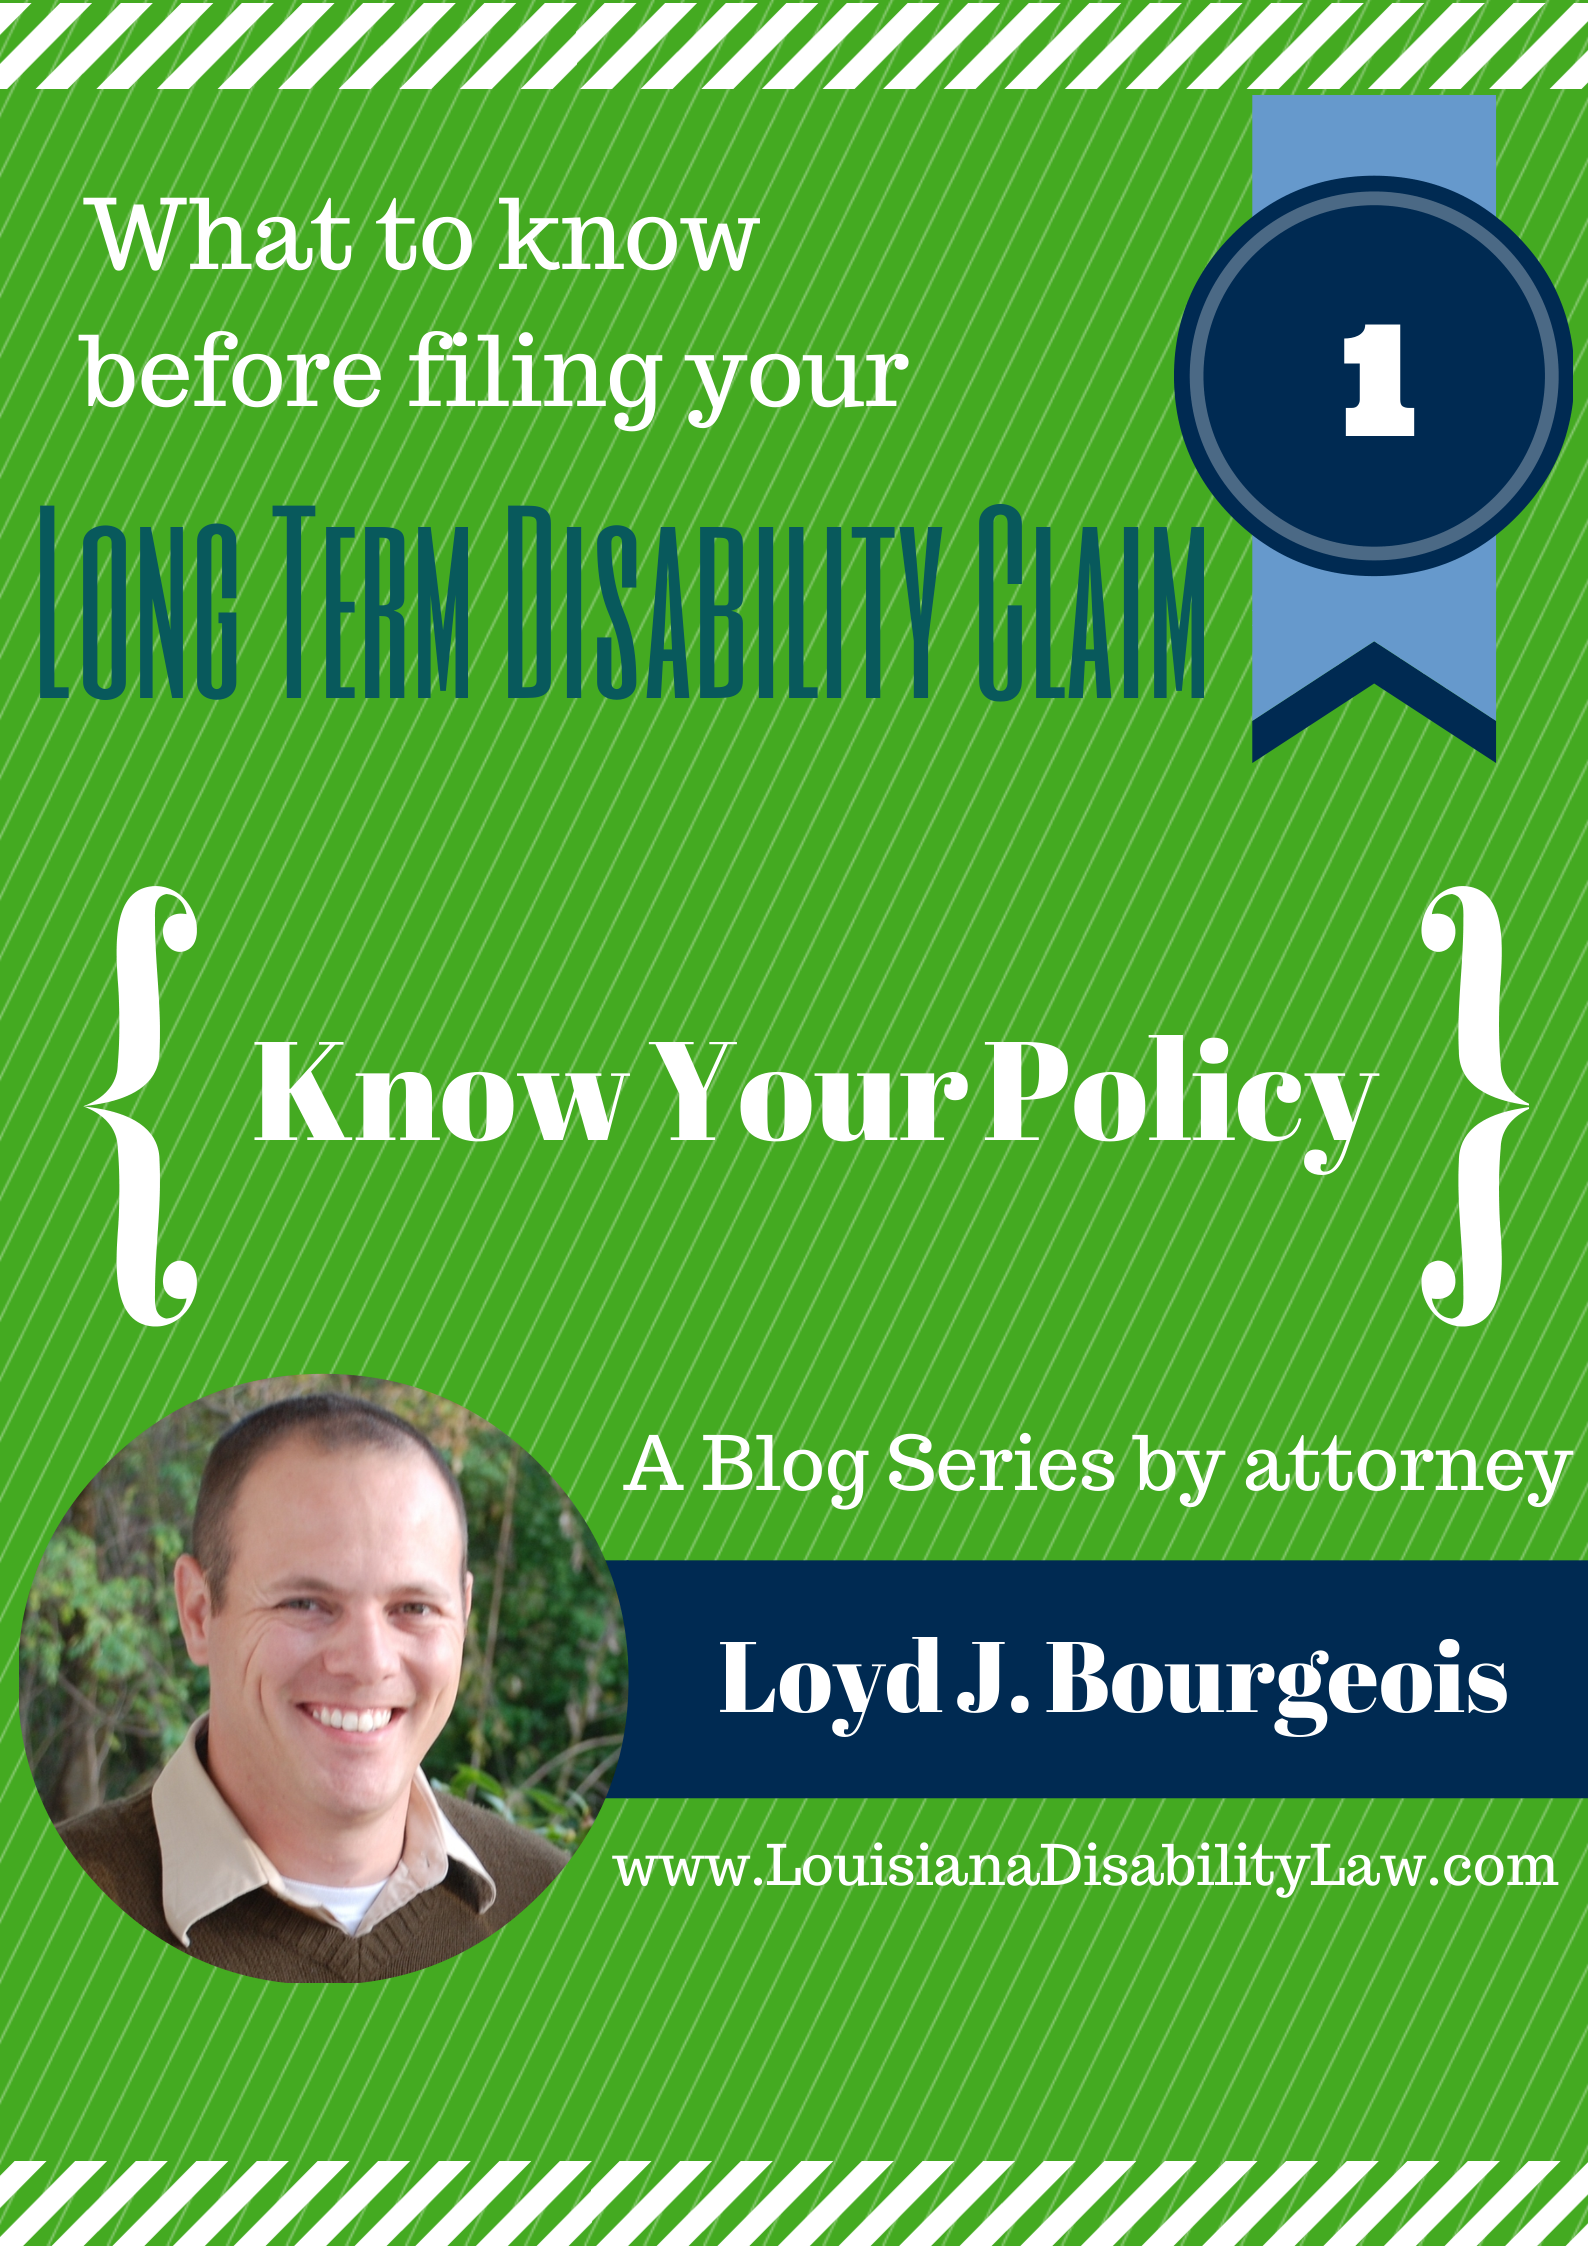 What to know before filing your Long-Term Disability Claim: Know your Policy